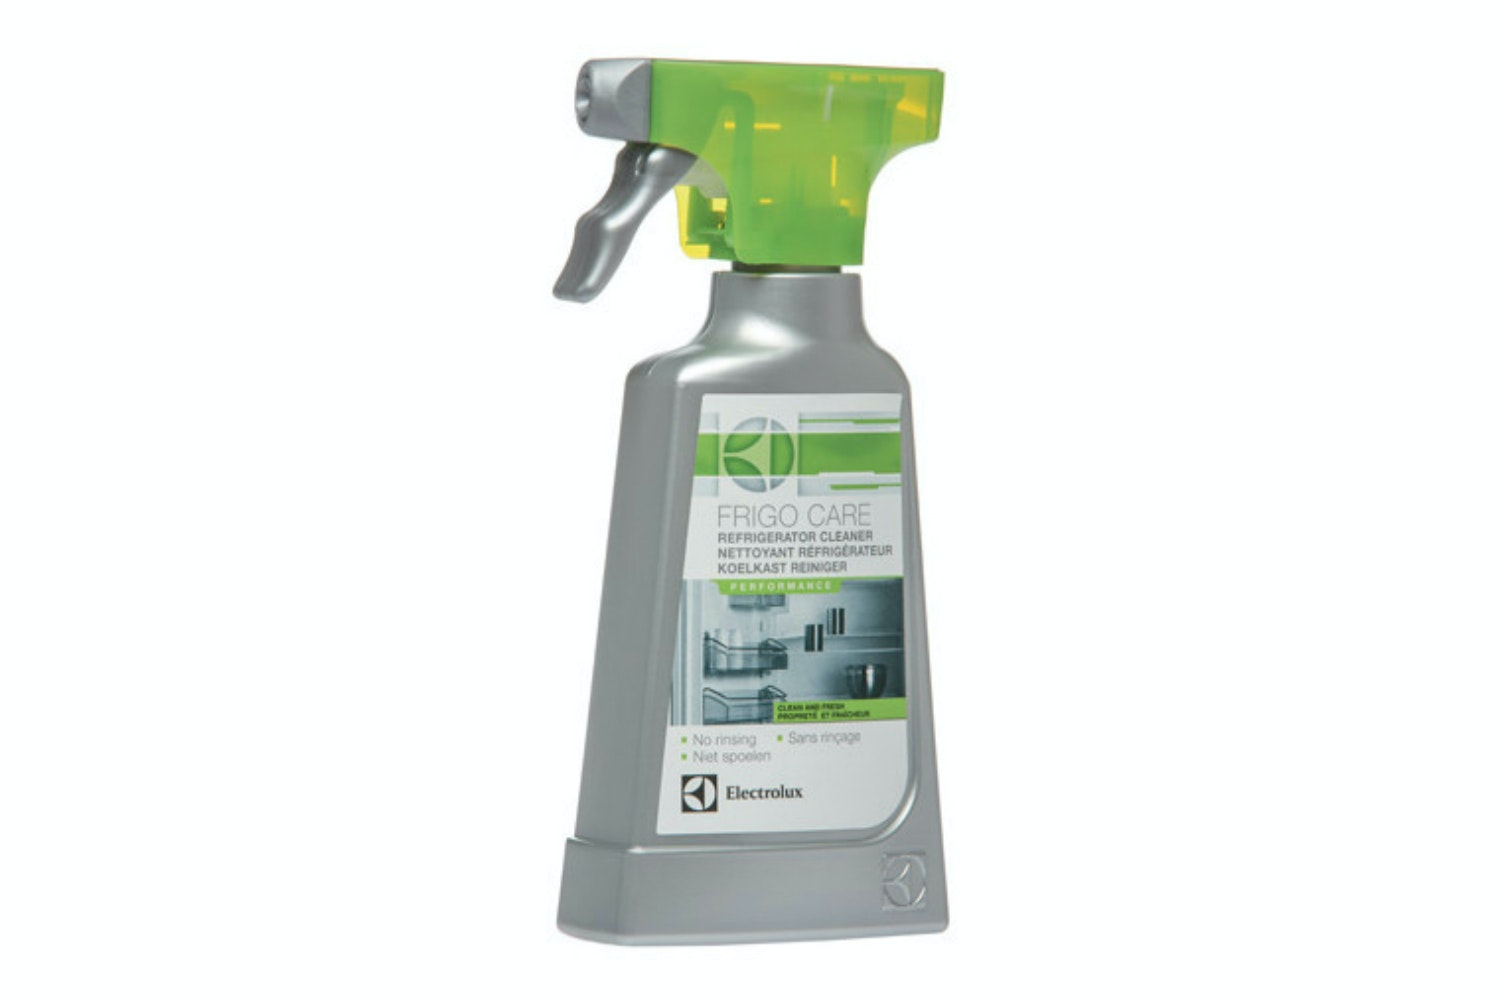 Electrolux FrigoCare Fridge Cleaner Spray | 9029792596